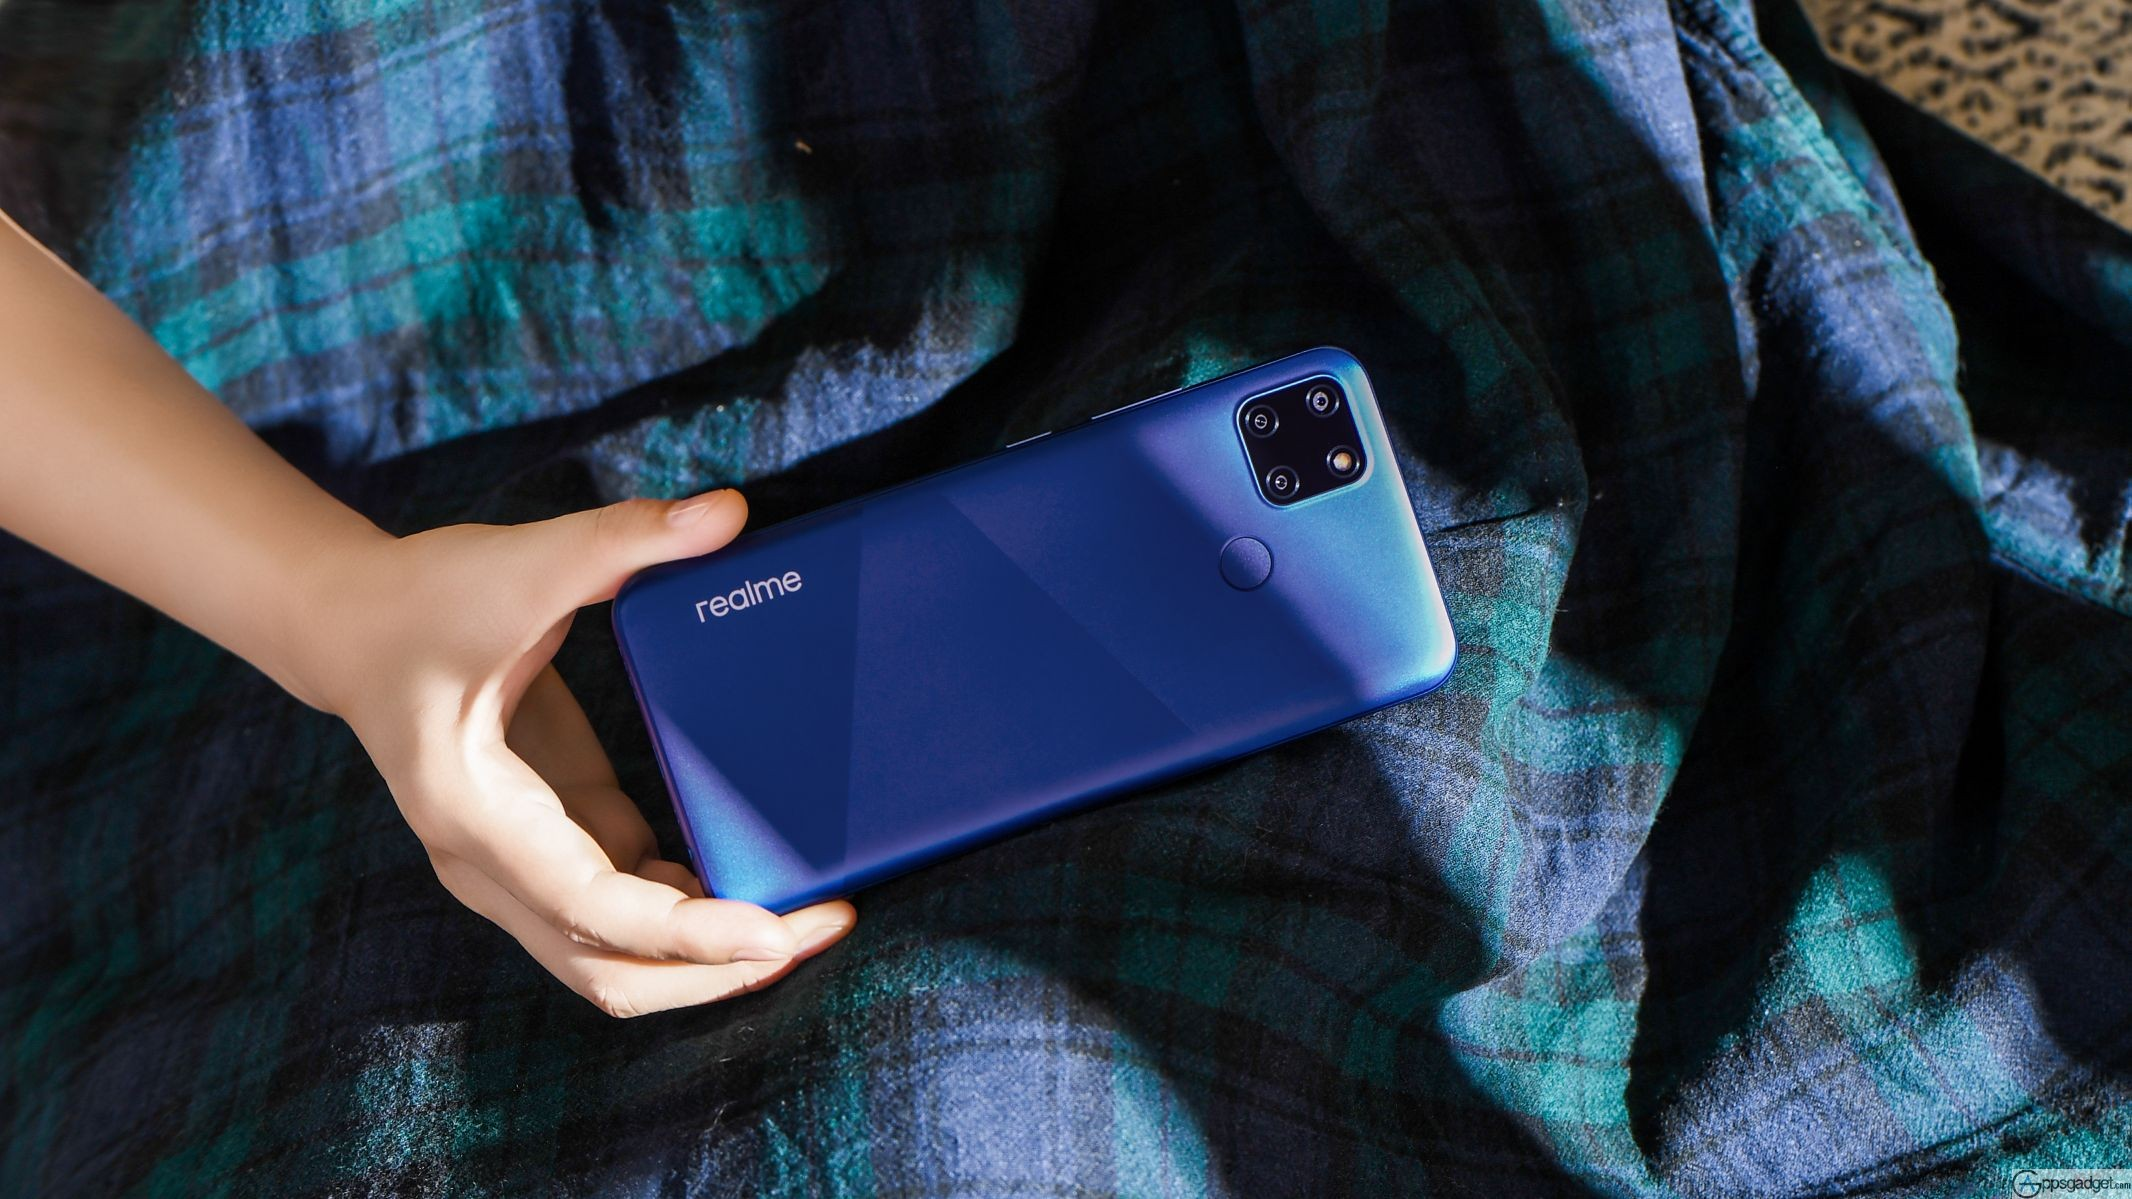 realme C12 with 13MP, 3GB RAM+32GB Memory and Buds Classic Launched